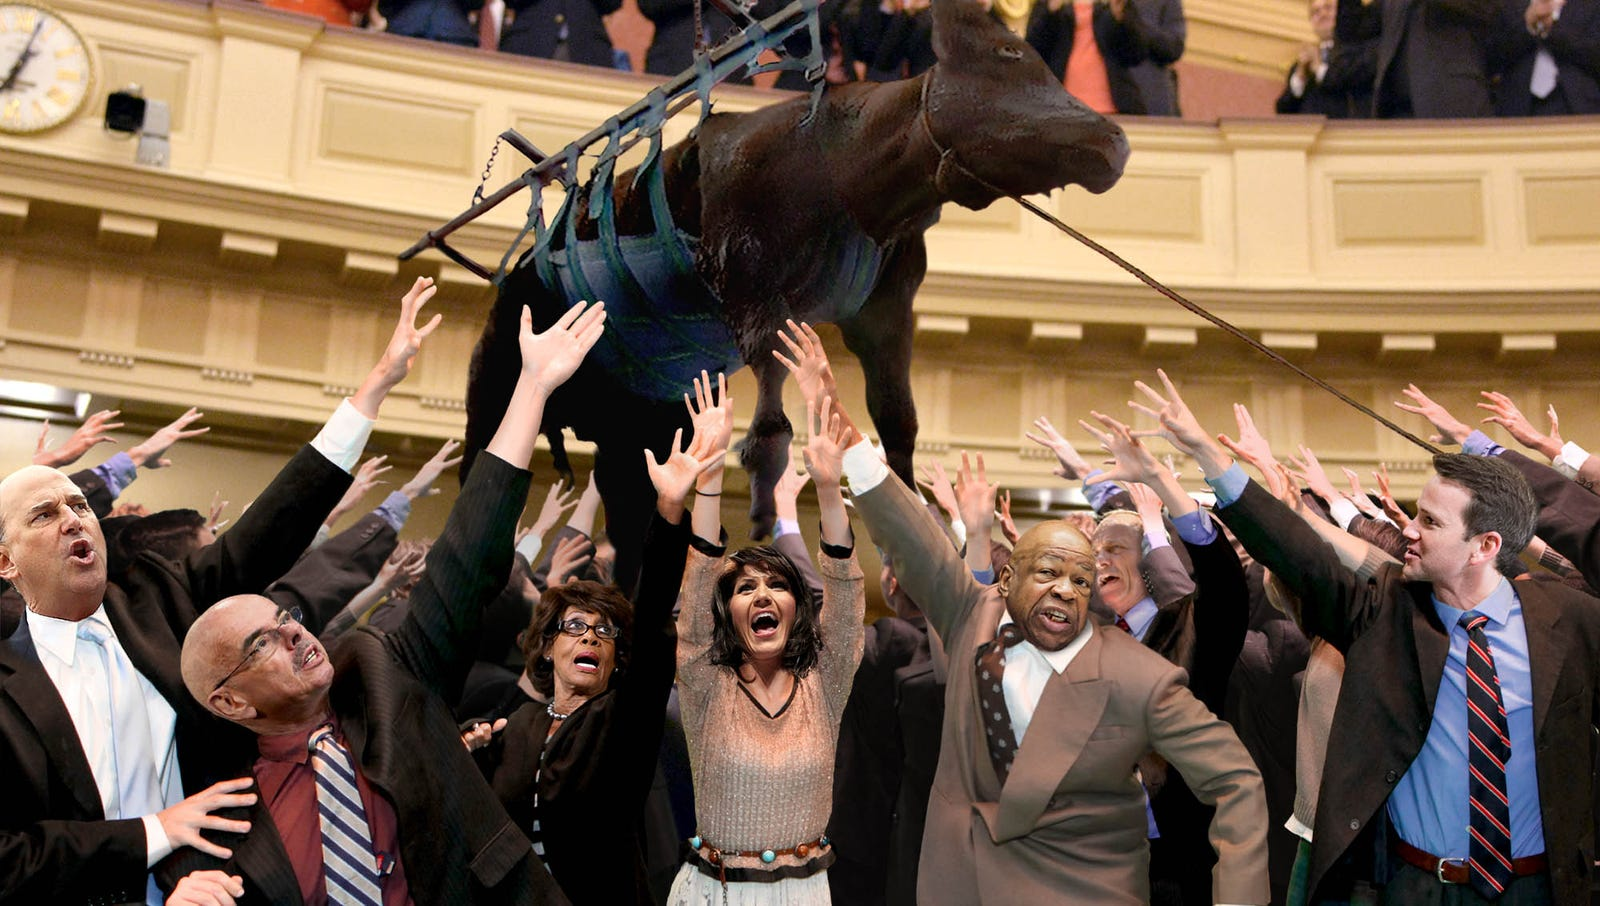 Live Cow Lowered Onto Floor Of U.S. House Of Representatives